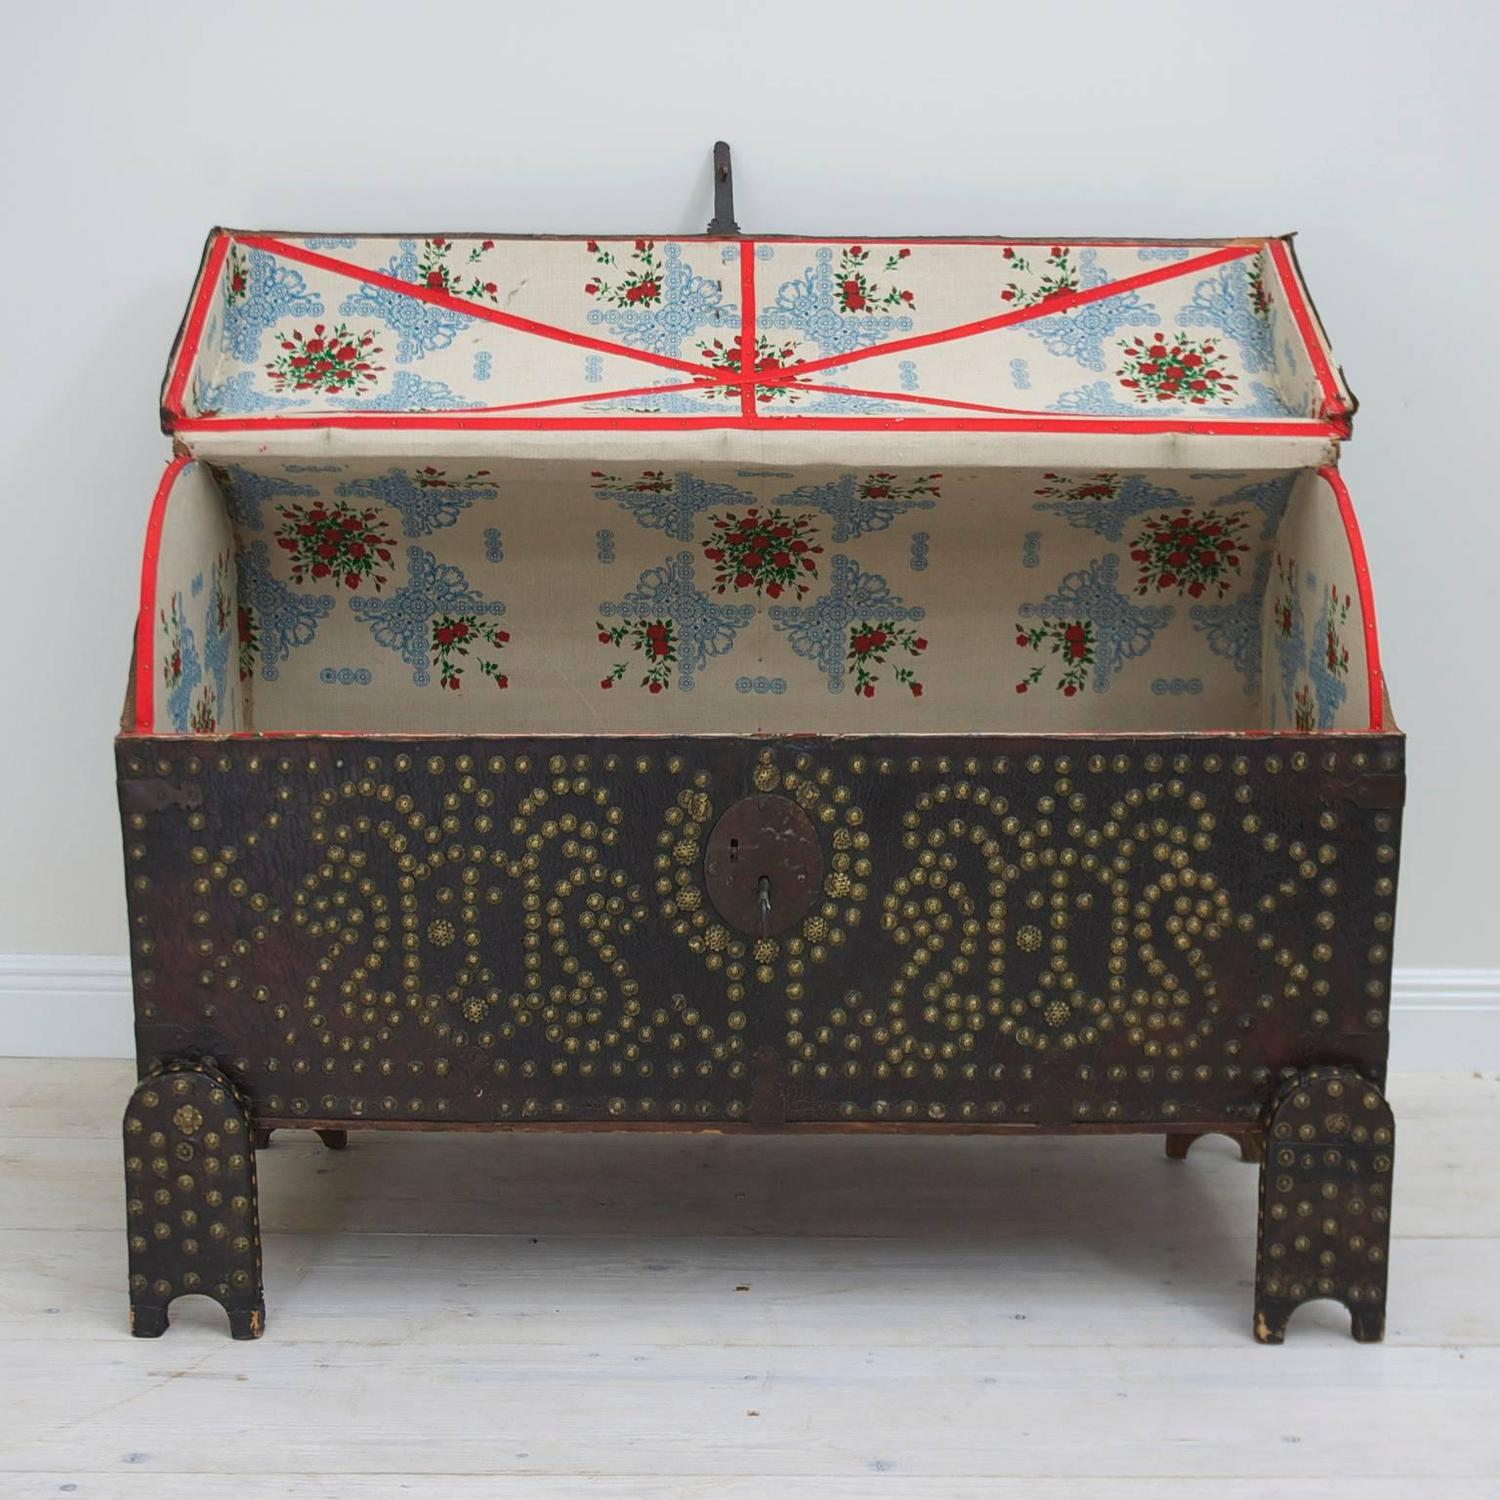 Decorative Nail Heads Antique Spanish Leather Bound Wedding Trunk On Stand With